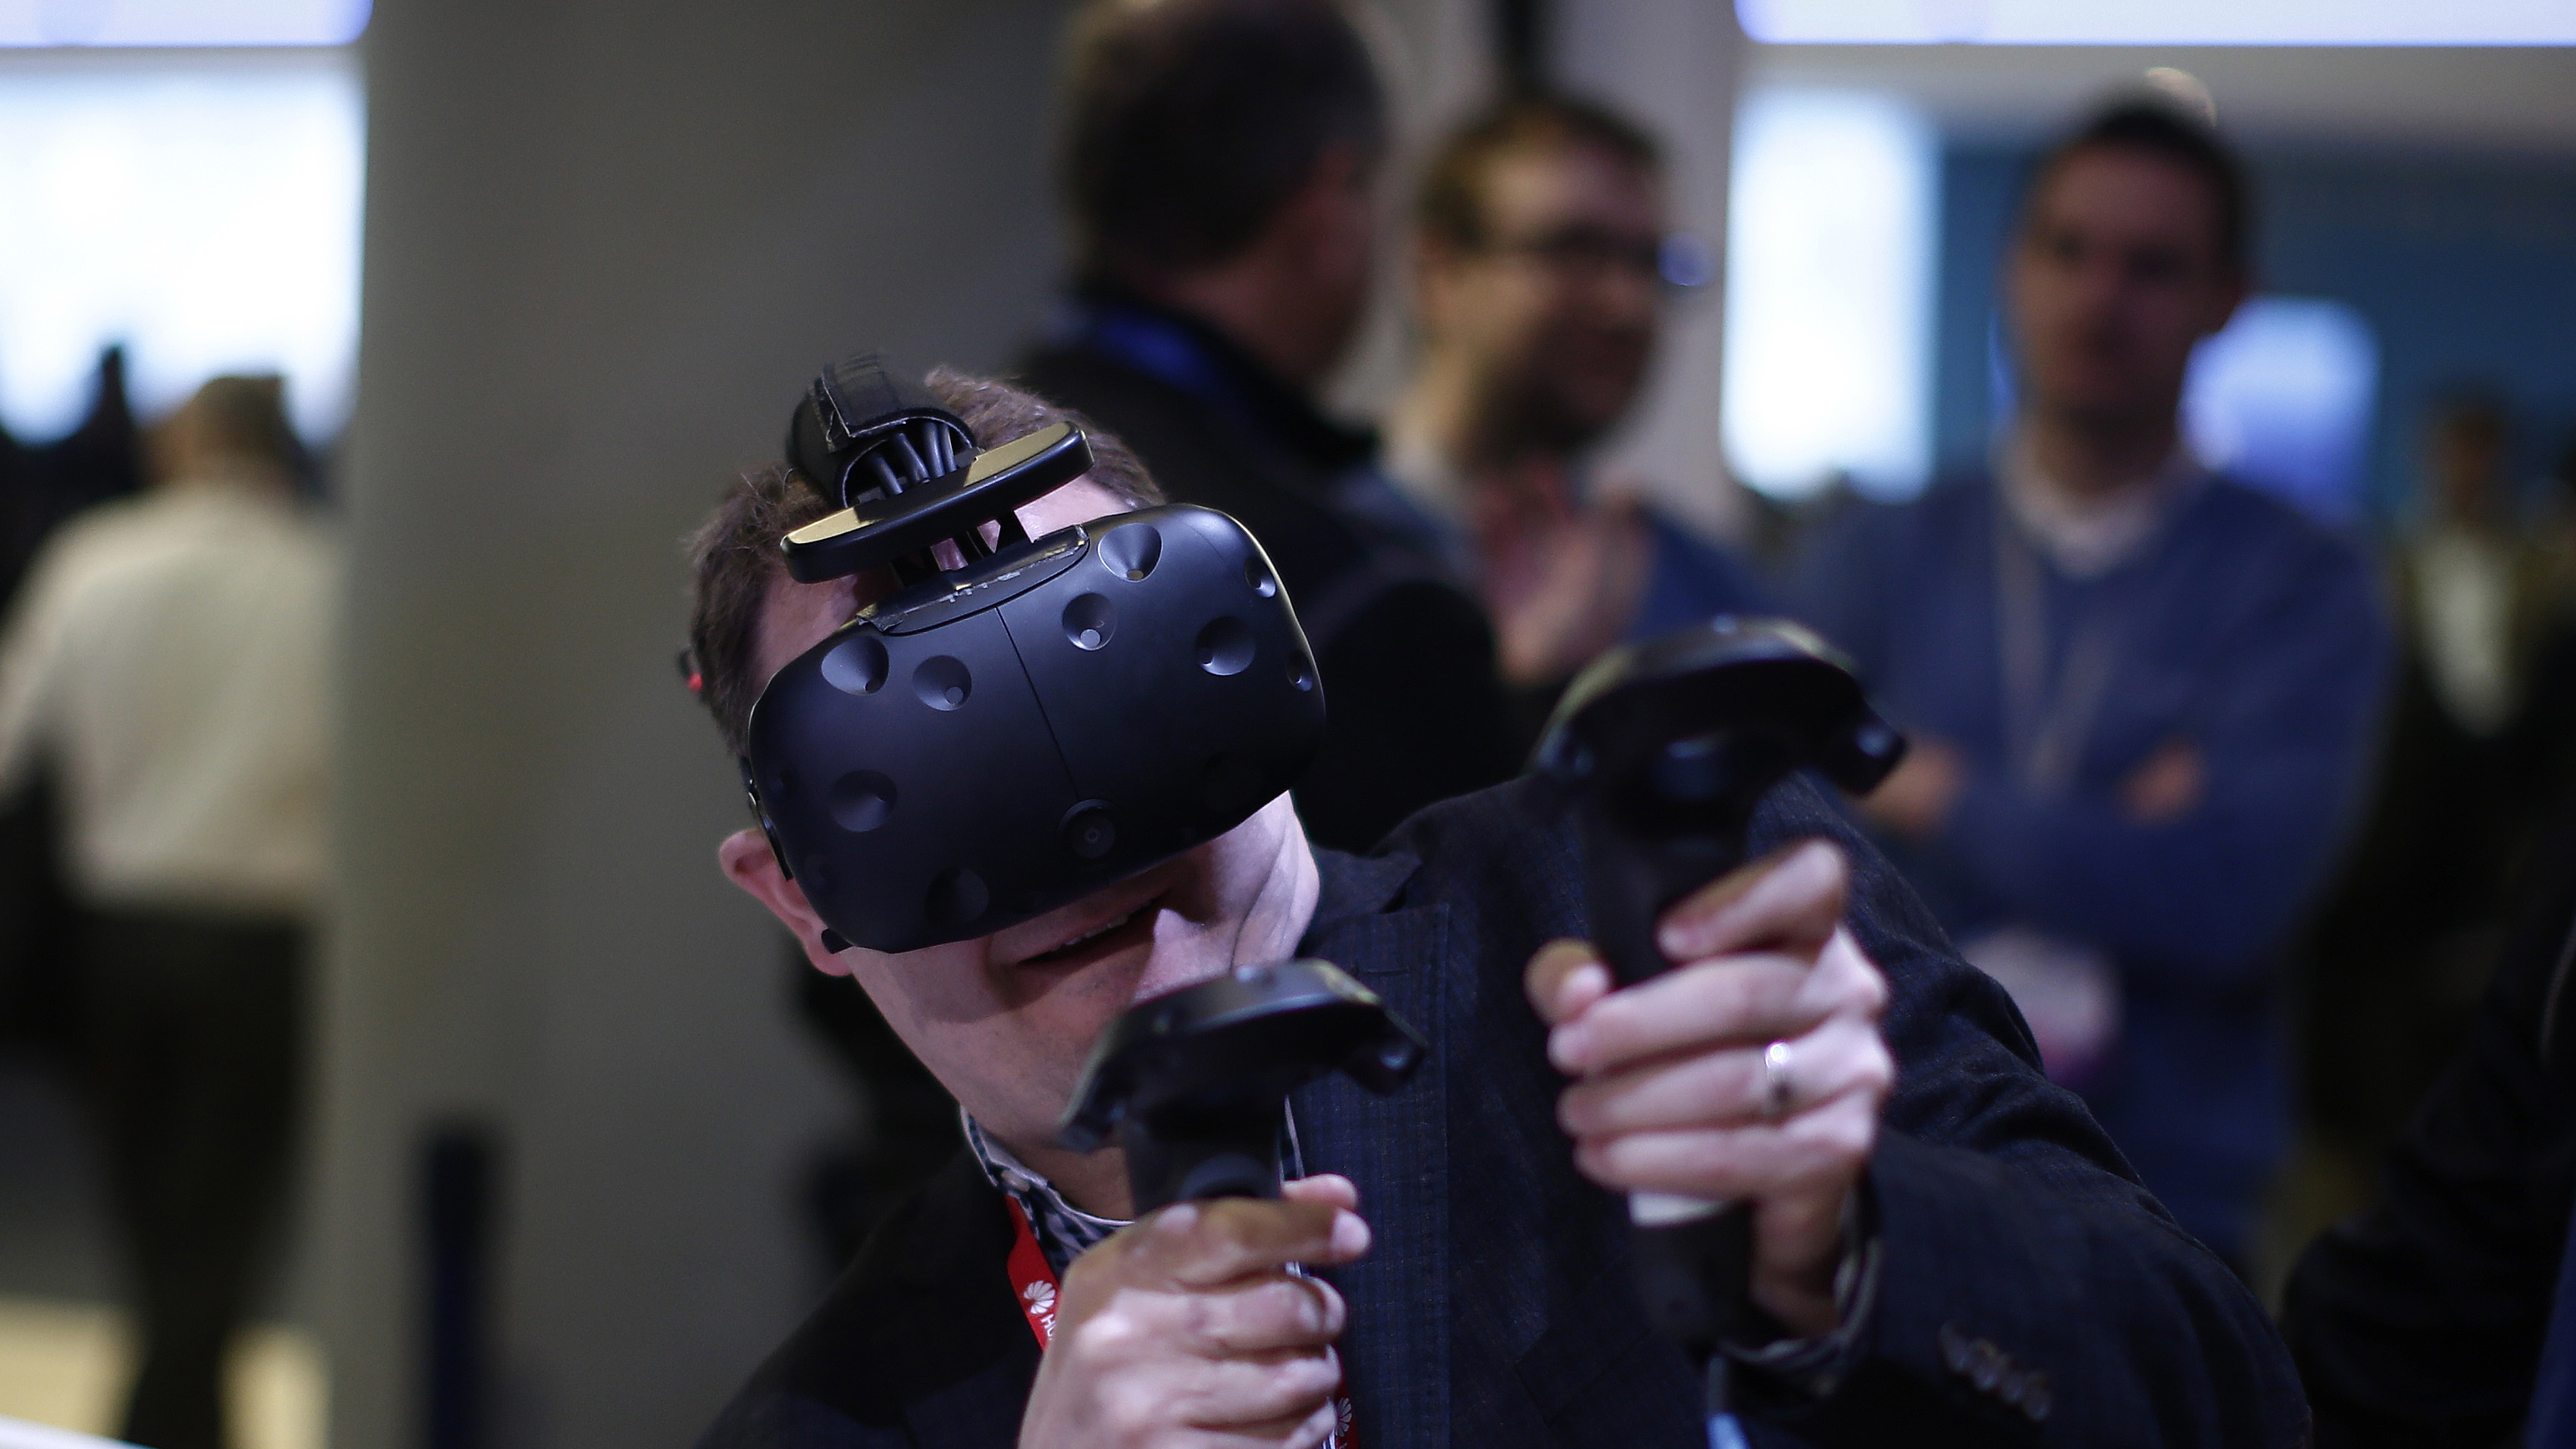 A visitor plays with a virtual reality glasses at the Mobile World Congress in Barcelona, Spain, Wednesday, March 1, 2017. Mobile World Congress, the world's leading mobile industry event, runs 27 February - 2 March in Barcelona, Spain. (AP Photo/Manu Fernandez)